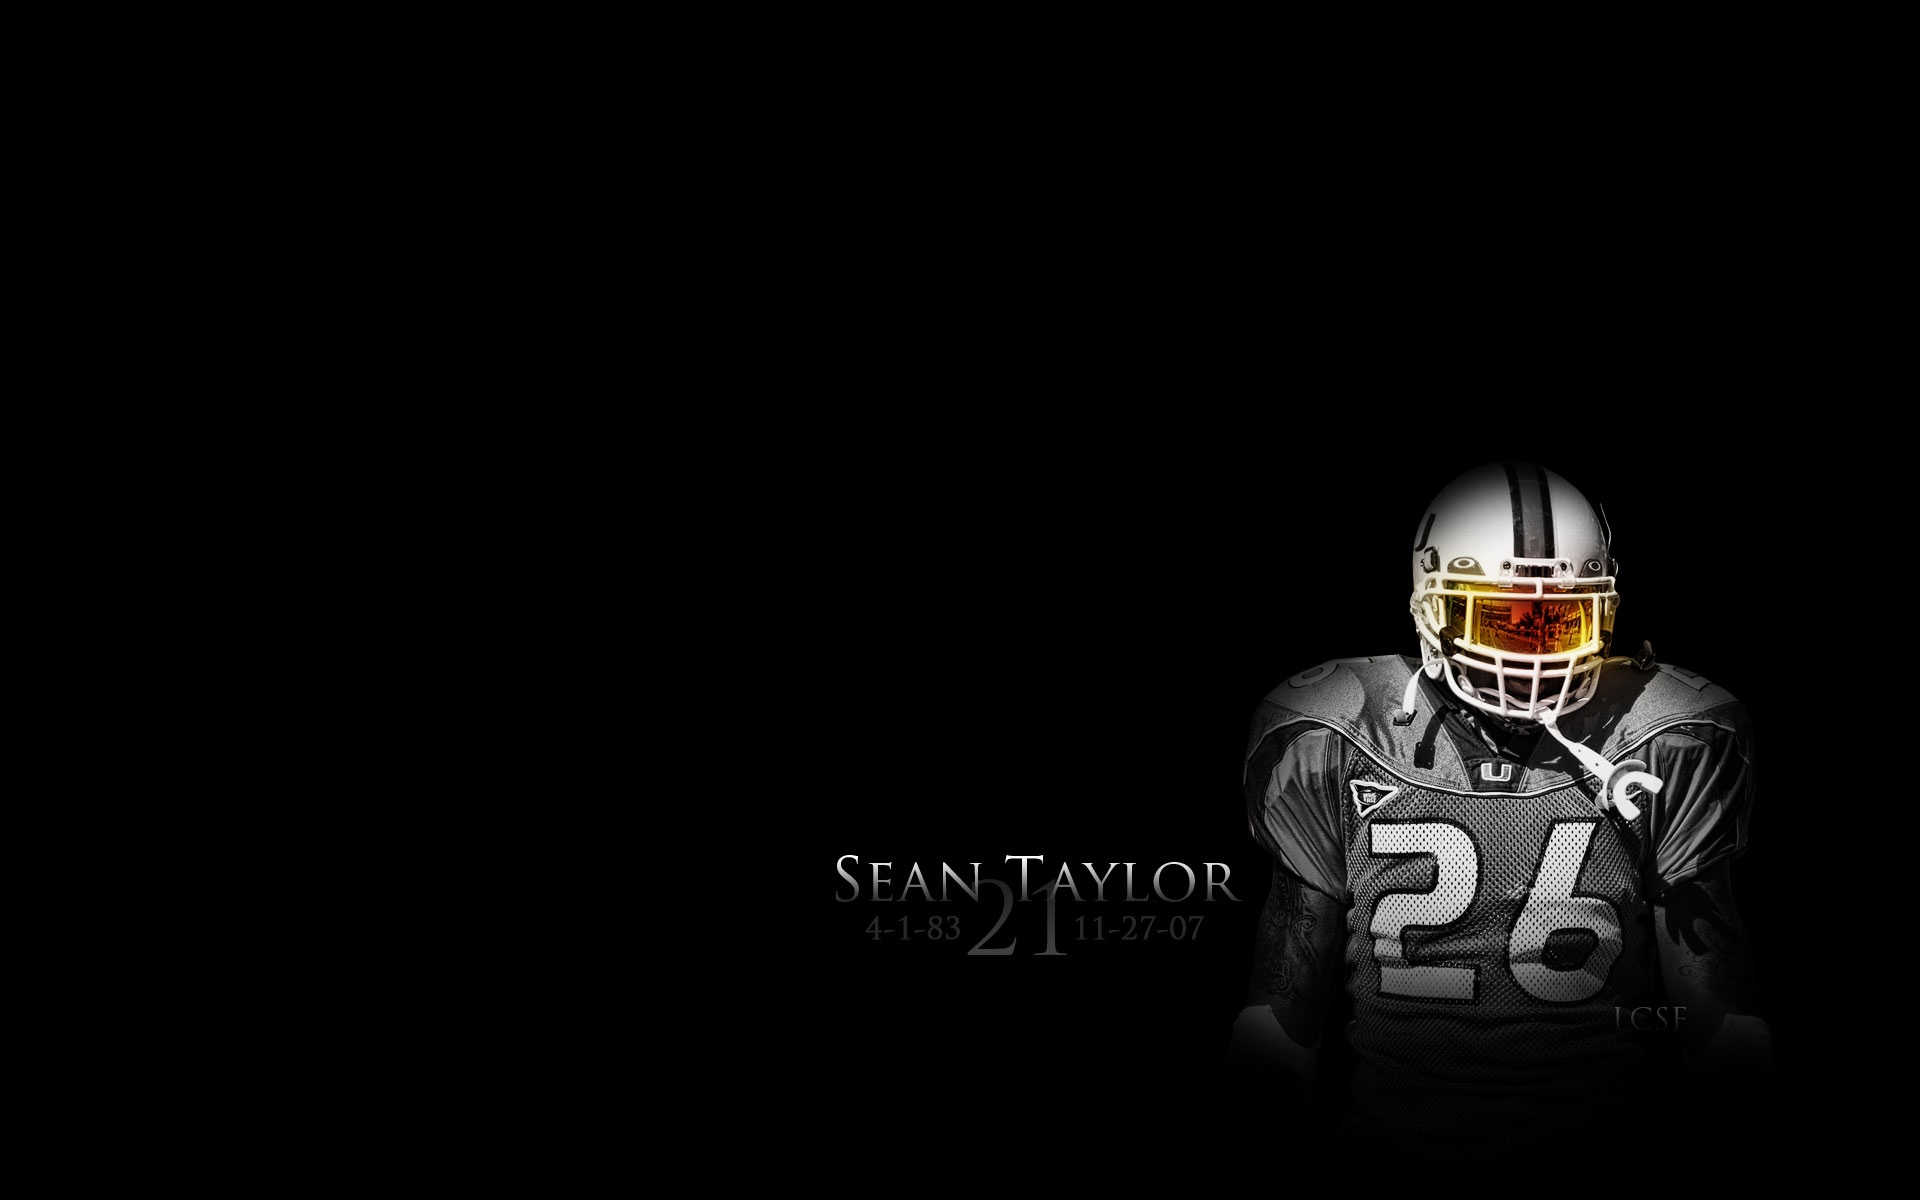 University of miami wallpaper the son of washington - University of miami wallpaper hd ...